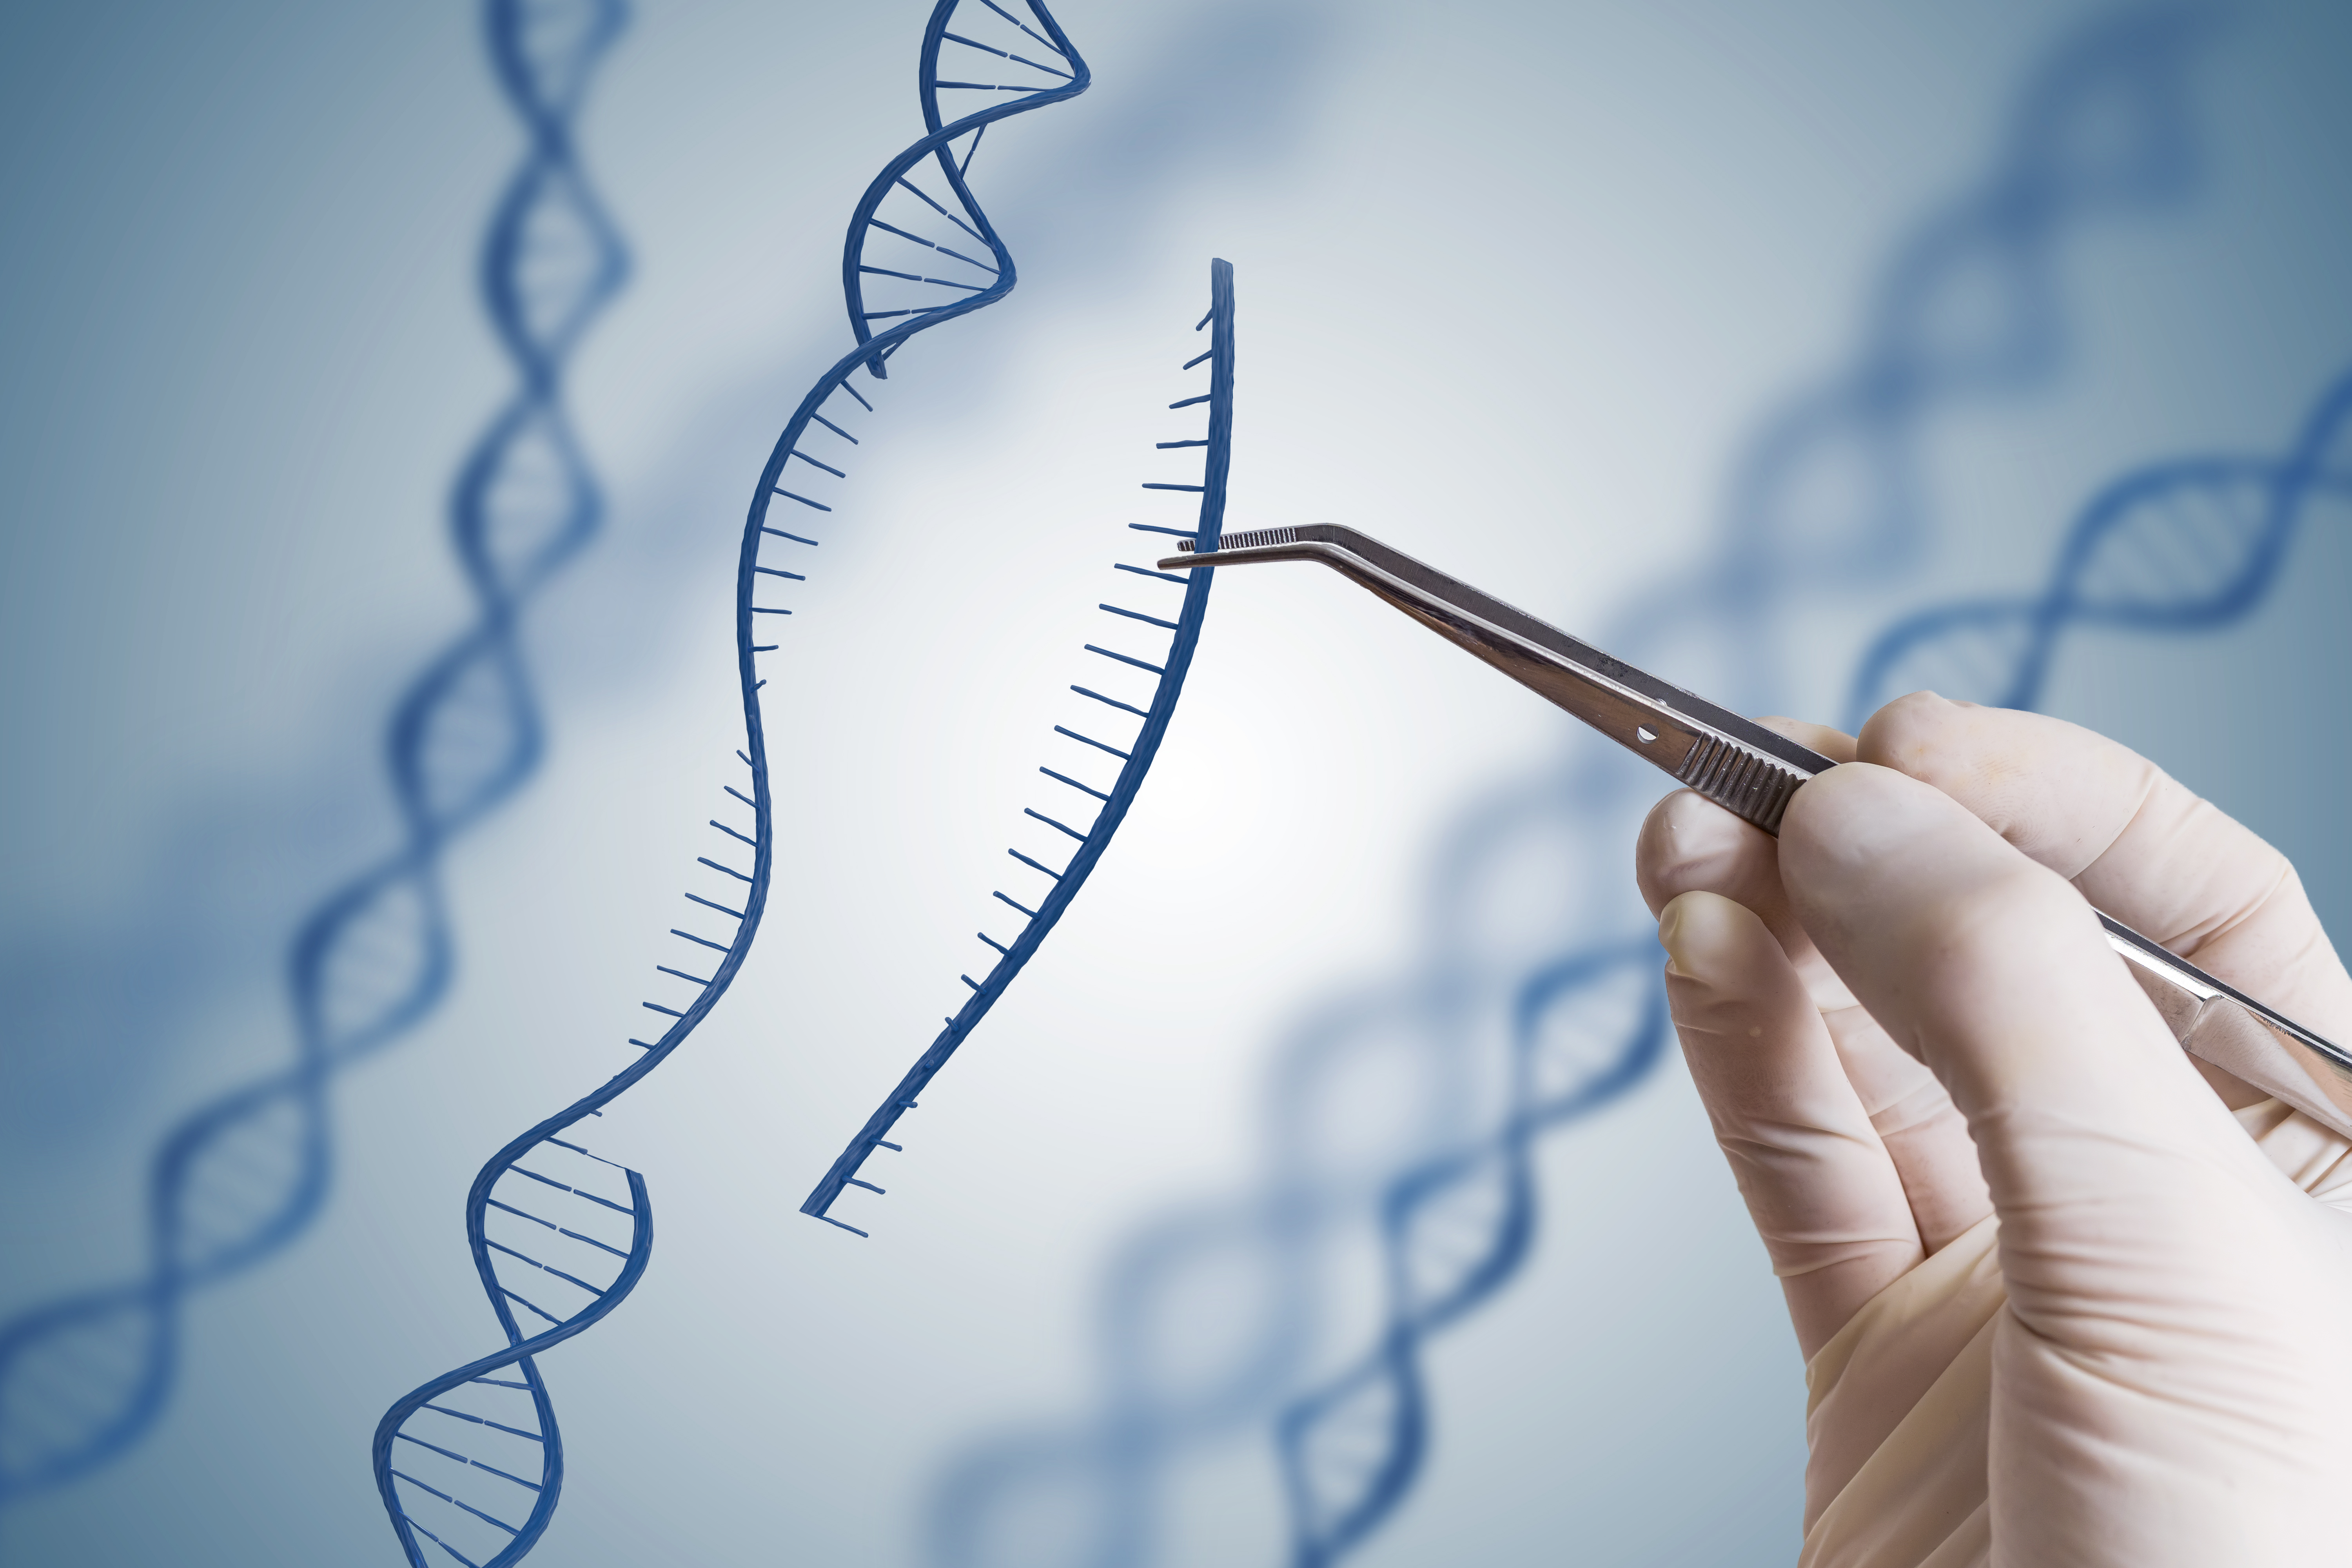 Next-gen CRISPR system allows precise search-and-replace gene editing